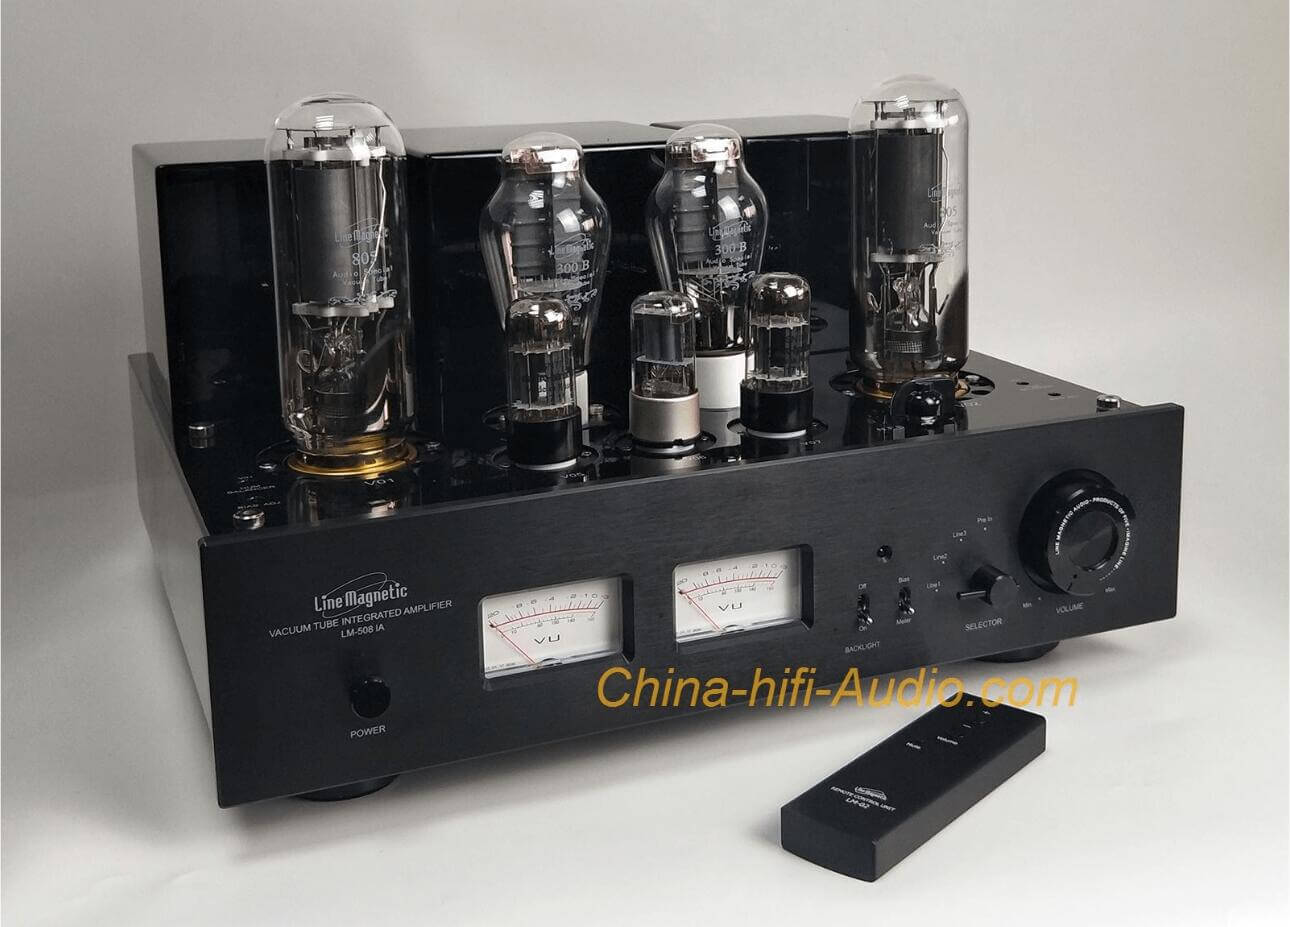 China-hifi-Audio Presents The Newest And Hottest Line Magnetic Tube Amplifiers to Provide Clients Many Modern Features Unlike The Conventional Amplifiers